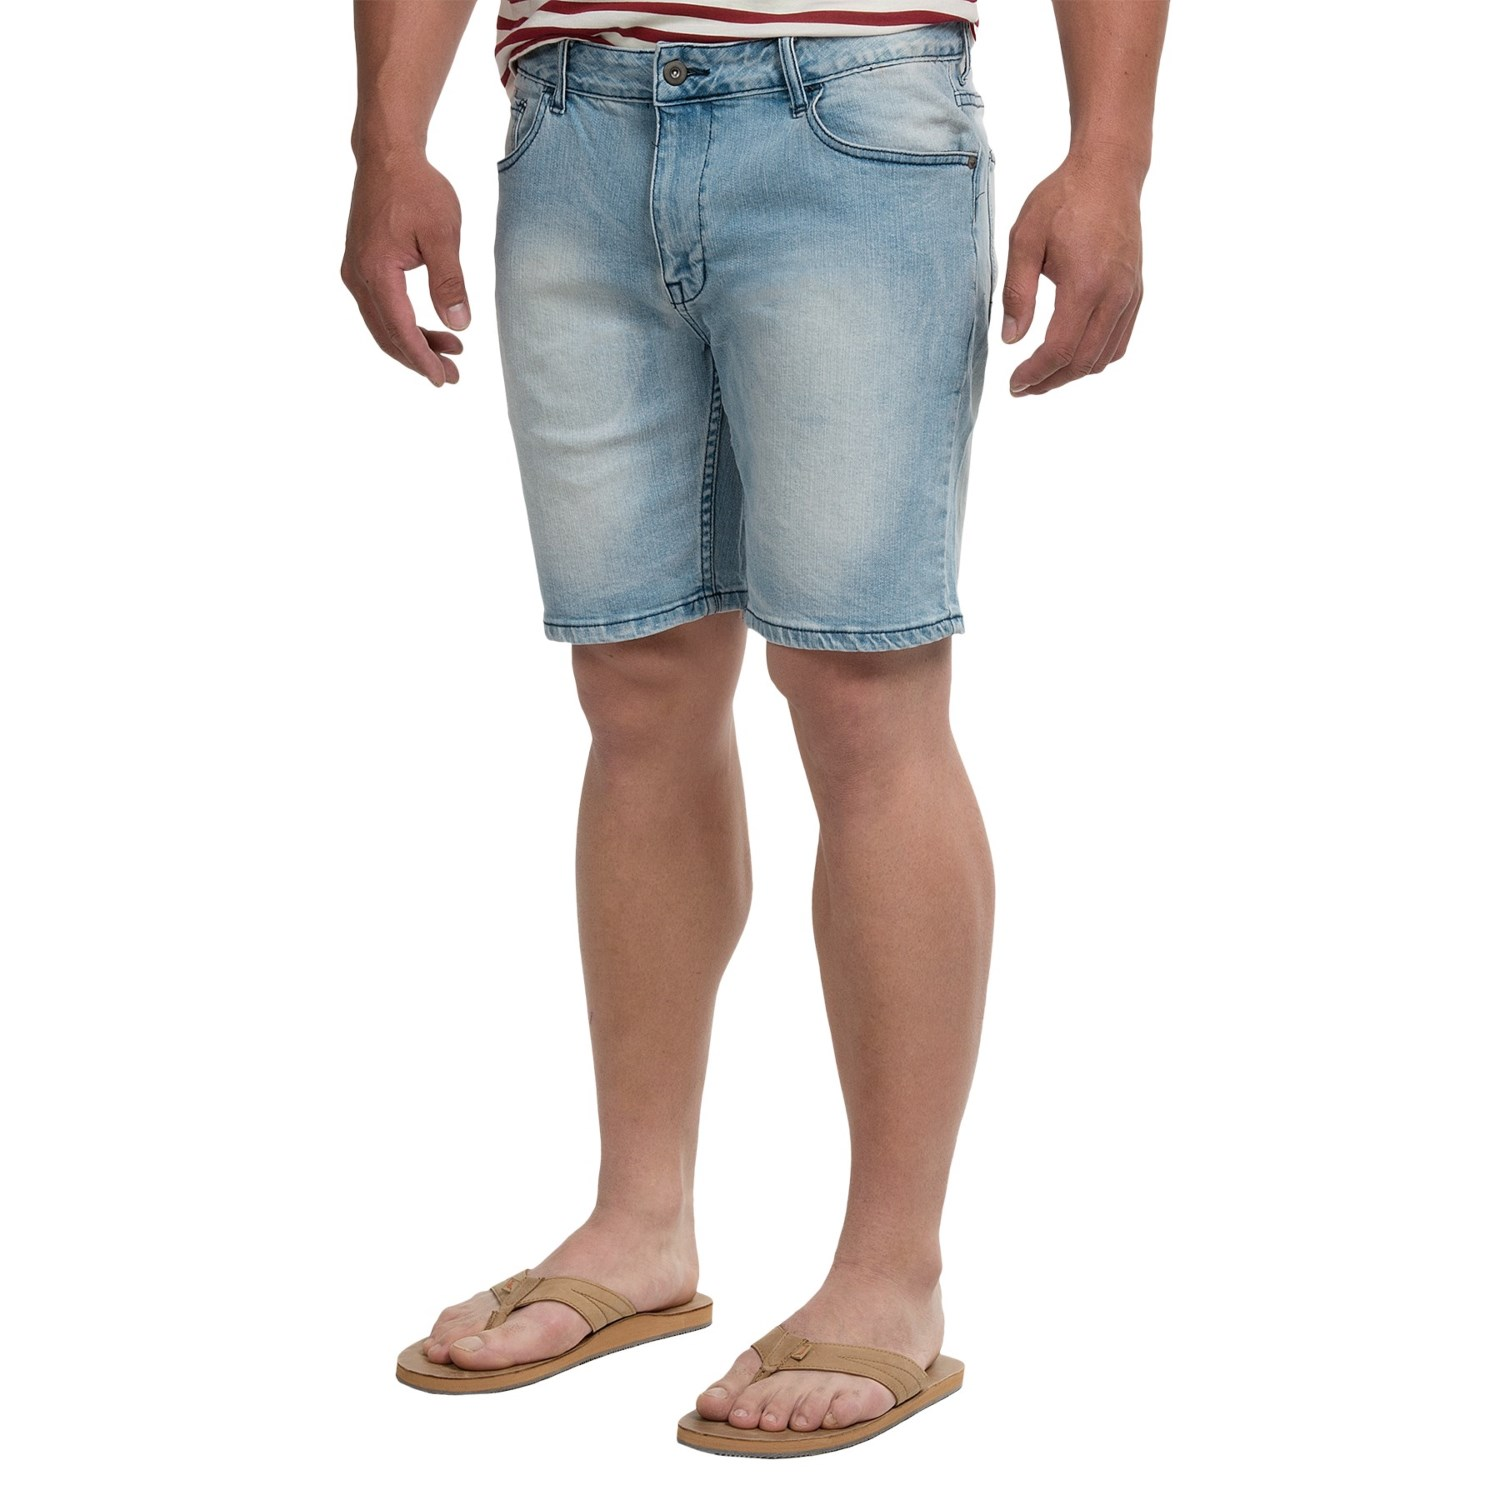 Mott & Grand Flat Front Jean Shorts (For Men) 148AK - Save 93%